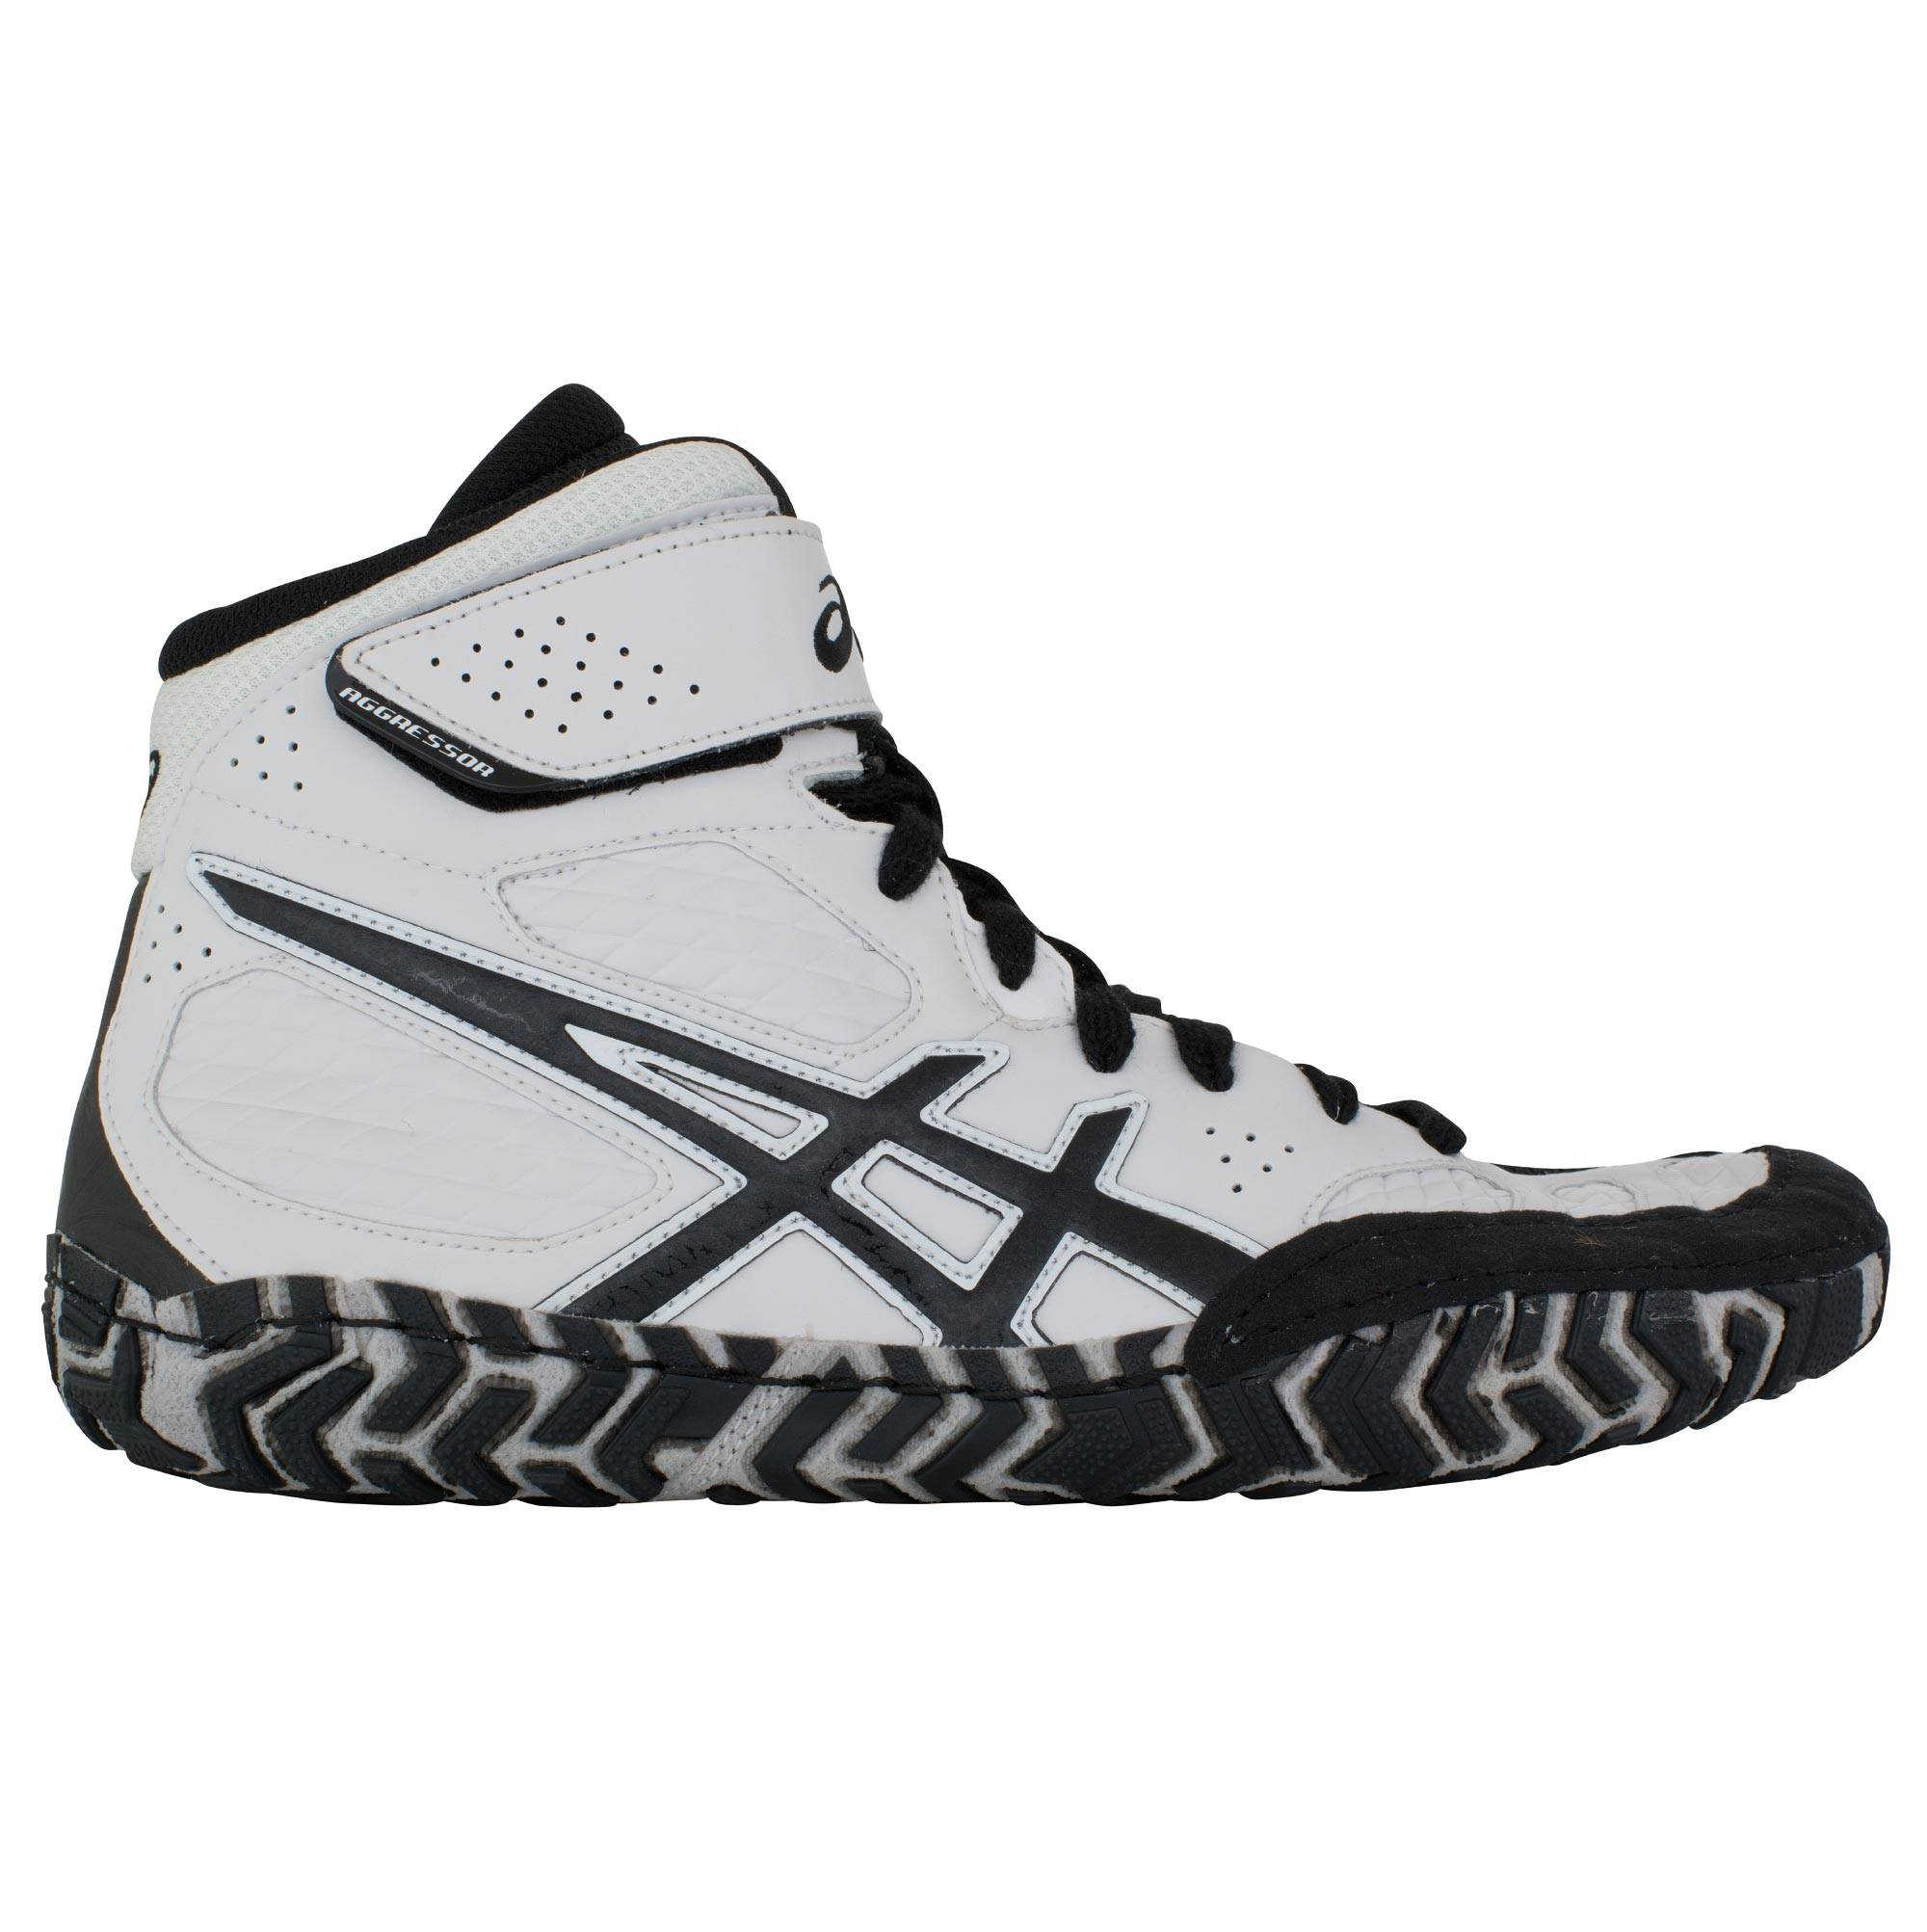 Cheap ASICS Aggressor 2 White/Black/Silver on sale